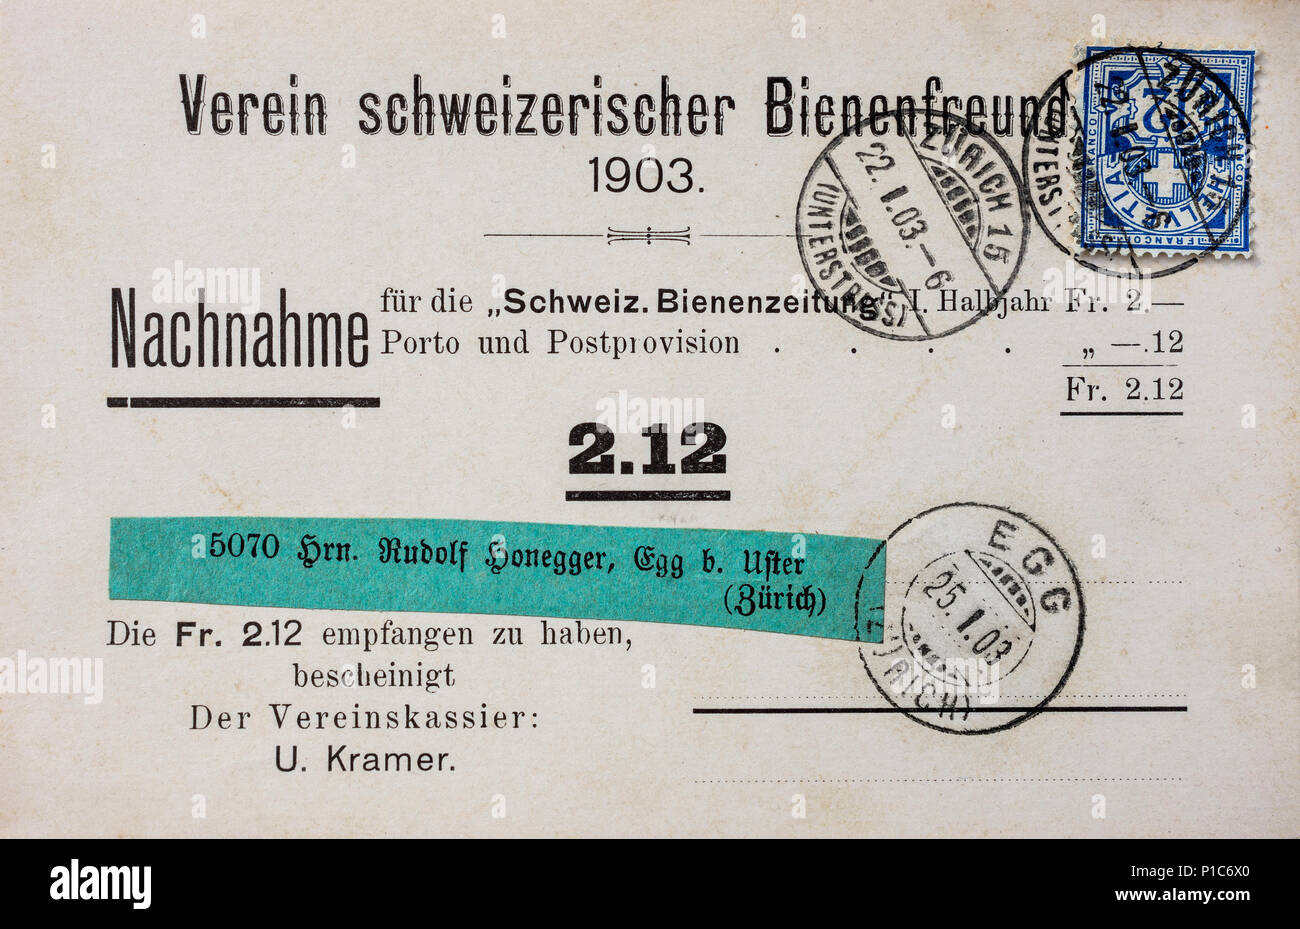 1903 Swiss nachnahme cash-on-delivery postcard with 'Egg' town postmark. - Stock Image